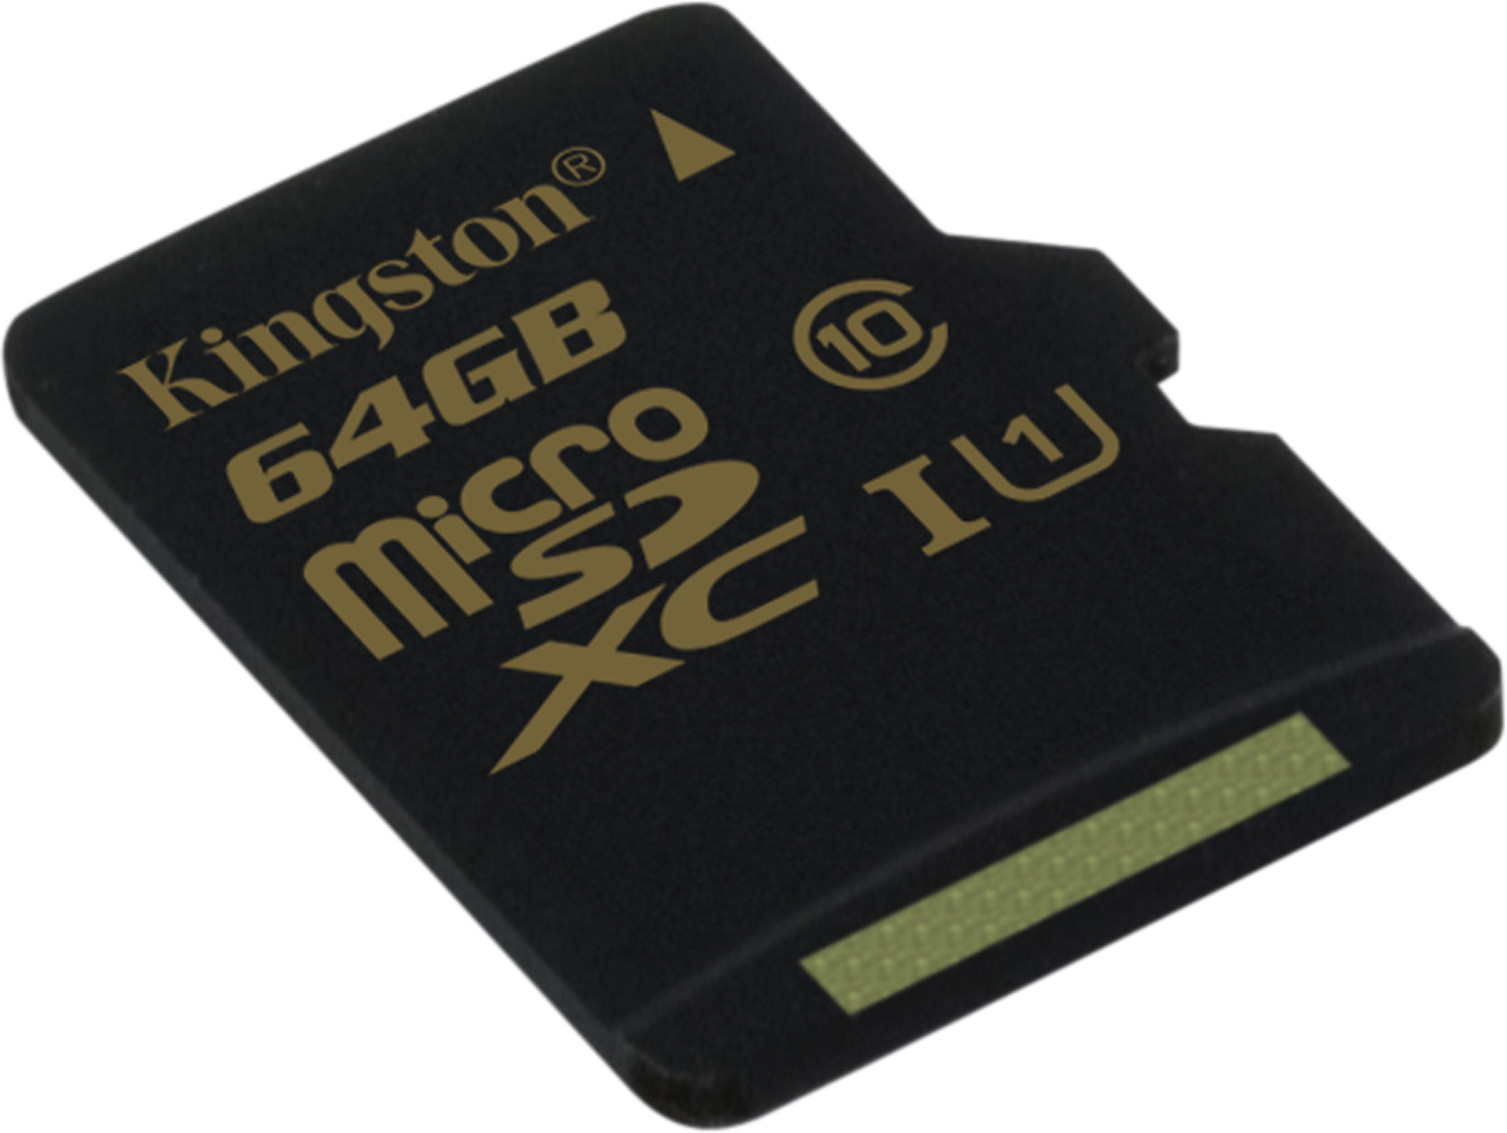 Kingston 64 GB MicroSDXC Class 10 90 MB/S  Memory Card